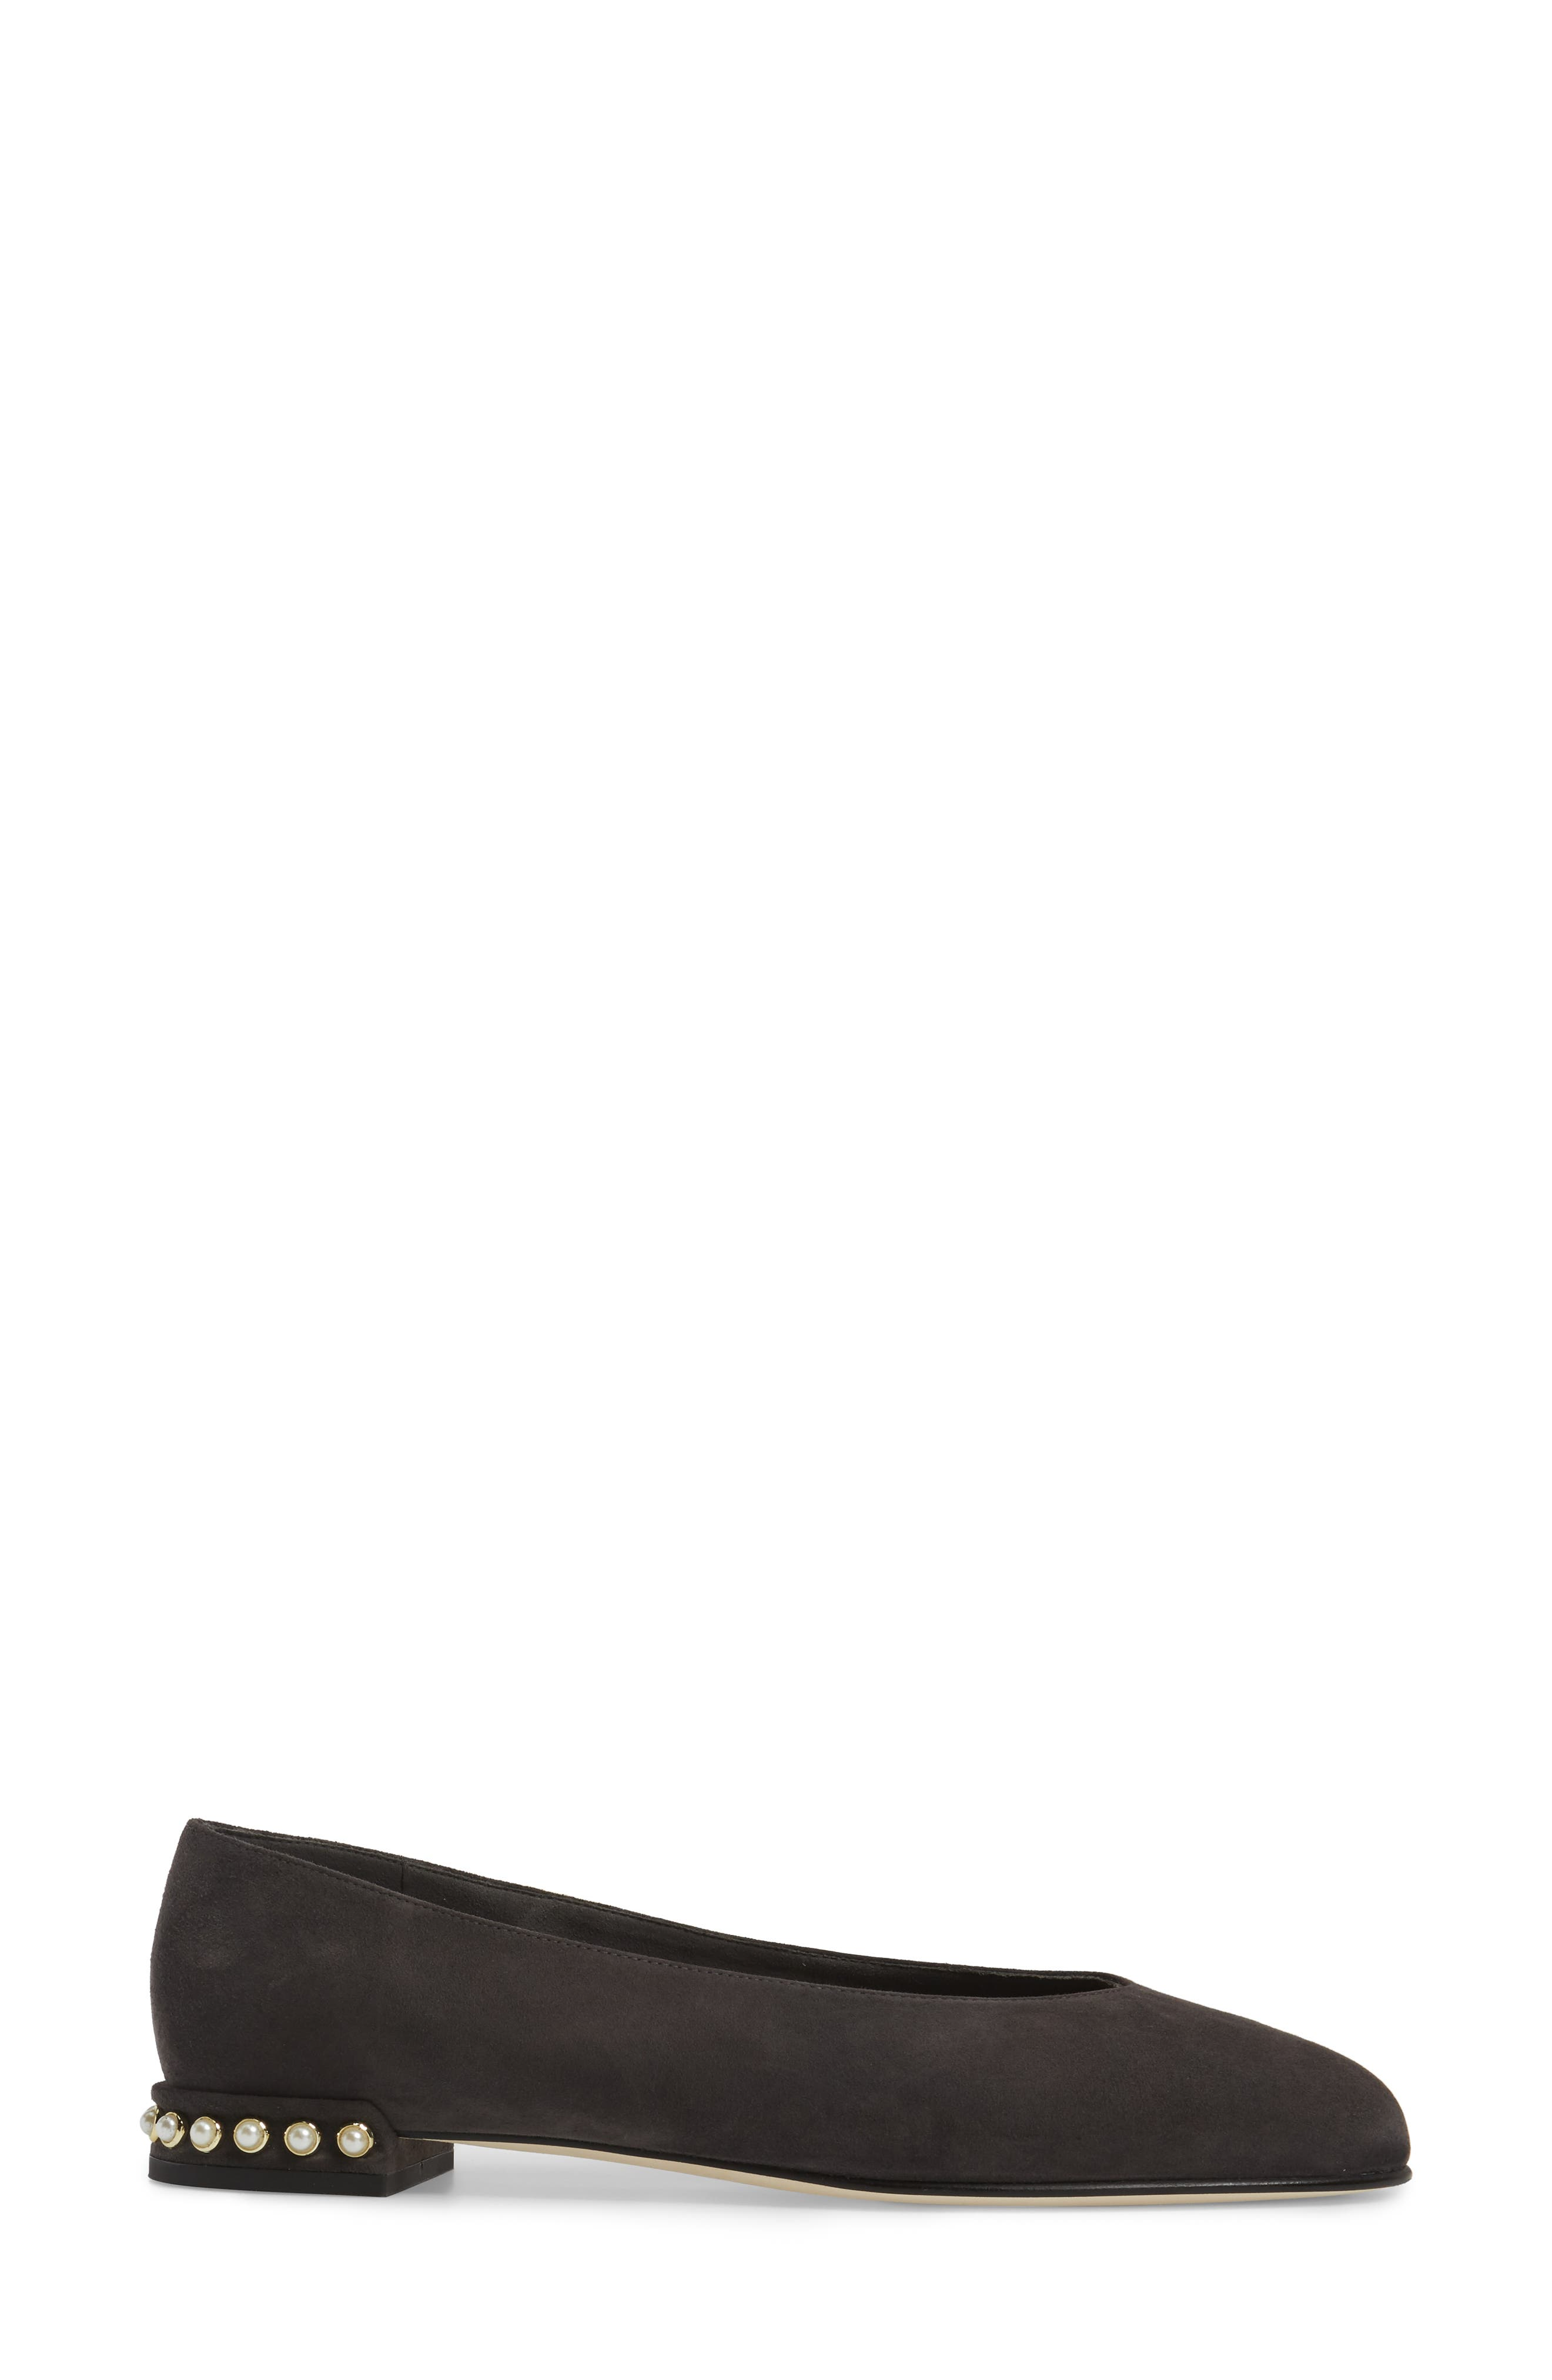 Chicpearl Ballet Flat,                             Alternate thumbnail 3, color,                             020